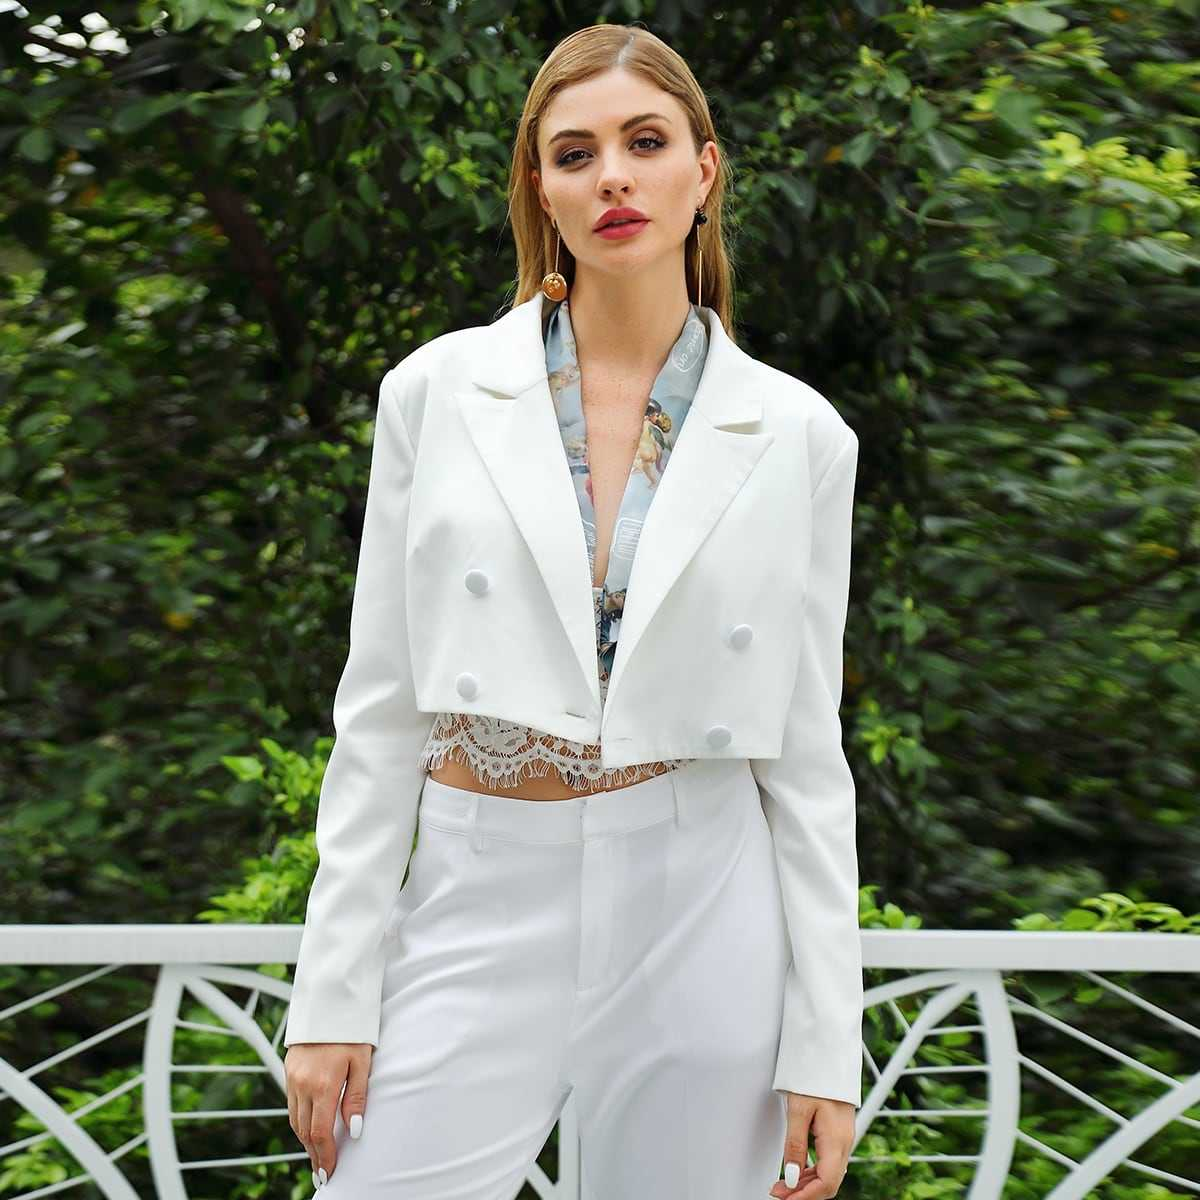 Double Crazy Solid Double Breasted Blazer in White by ROMWE on GOOFASH